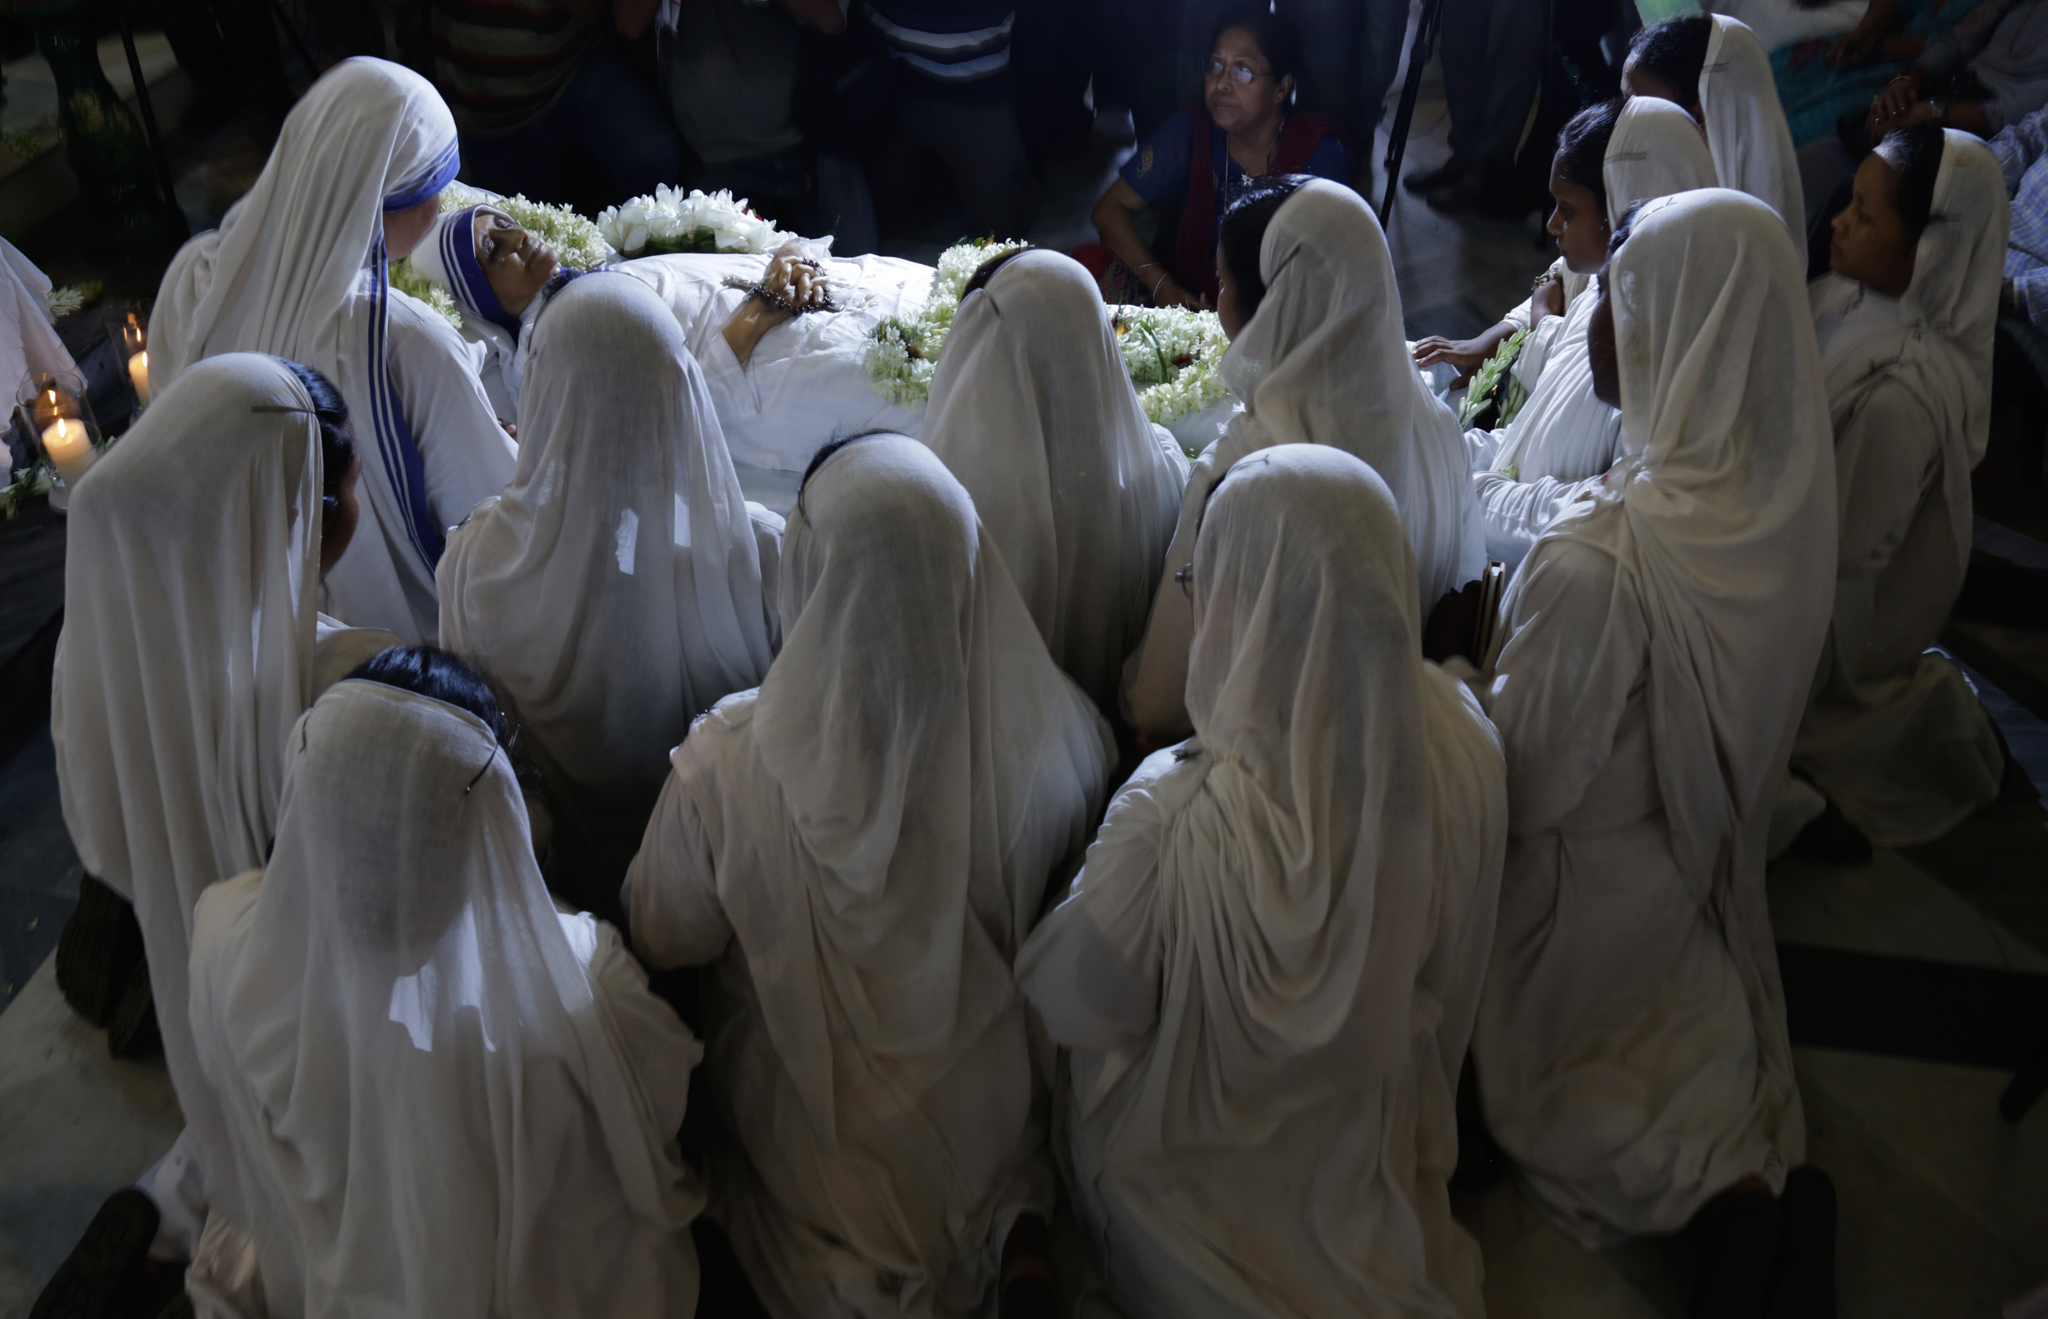 Nuns pray as they surround the body of Sister Nirmala Joshi, who succeeded Mother Theresa as the head of the Missionaries of Charity, in Kolkata, India.